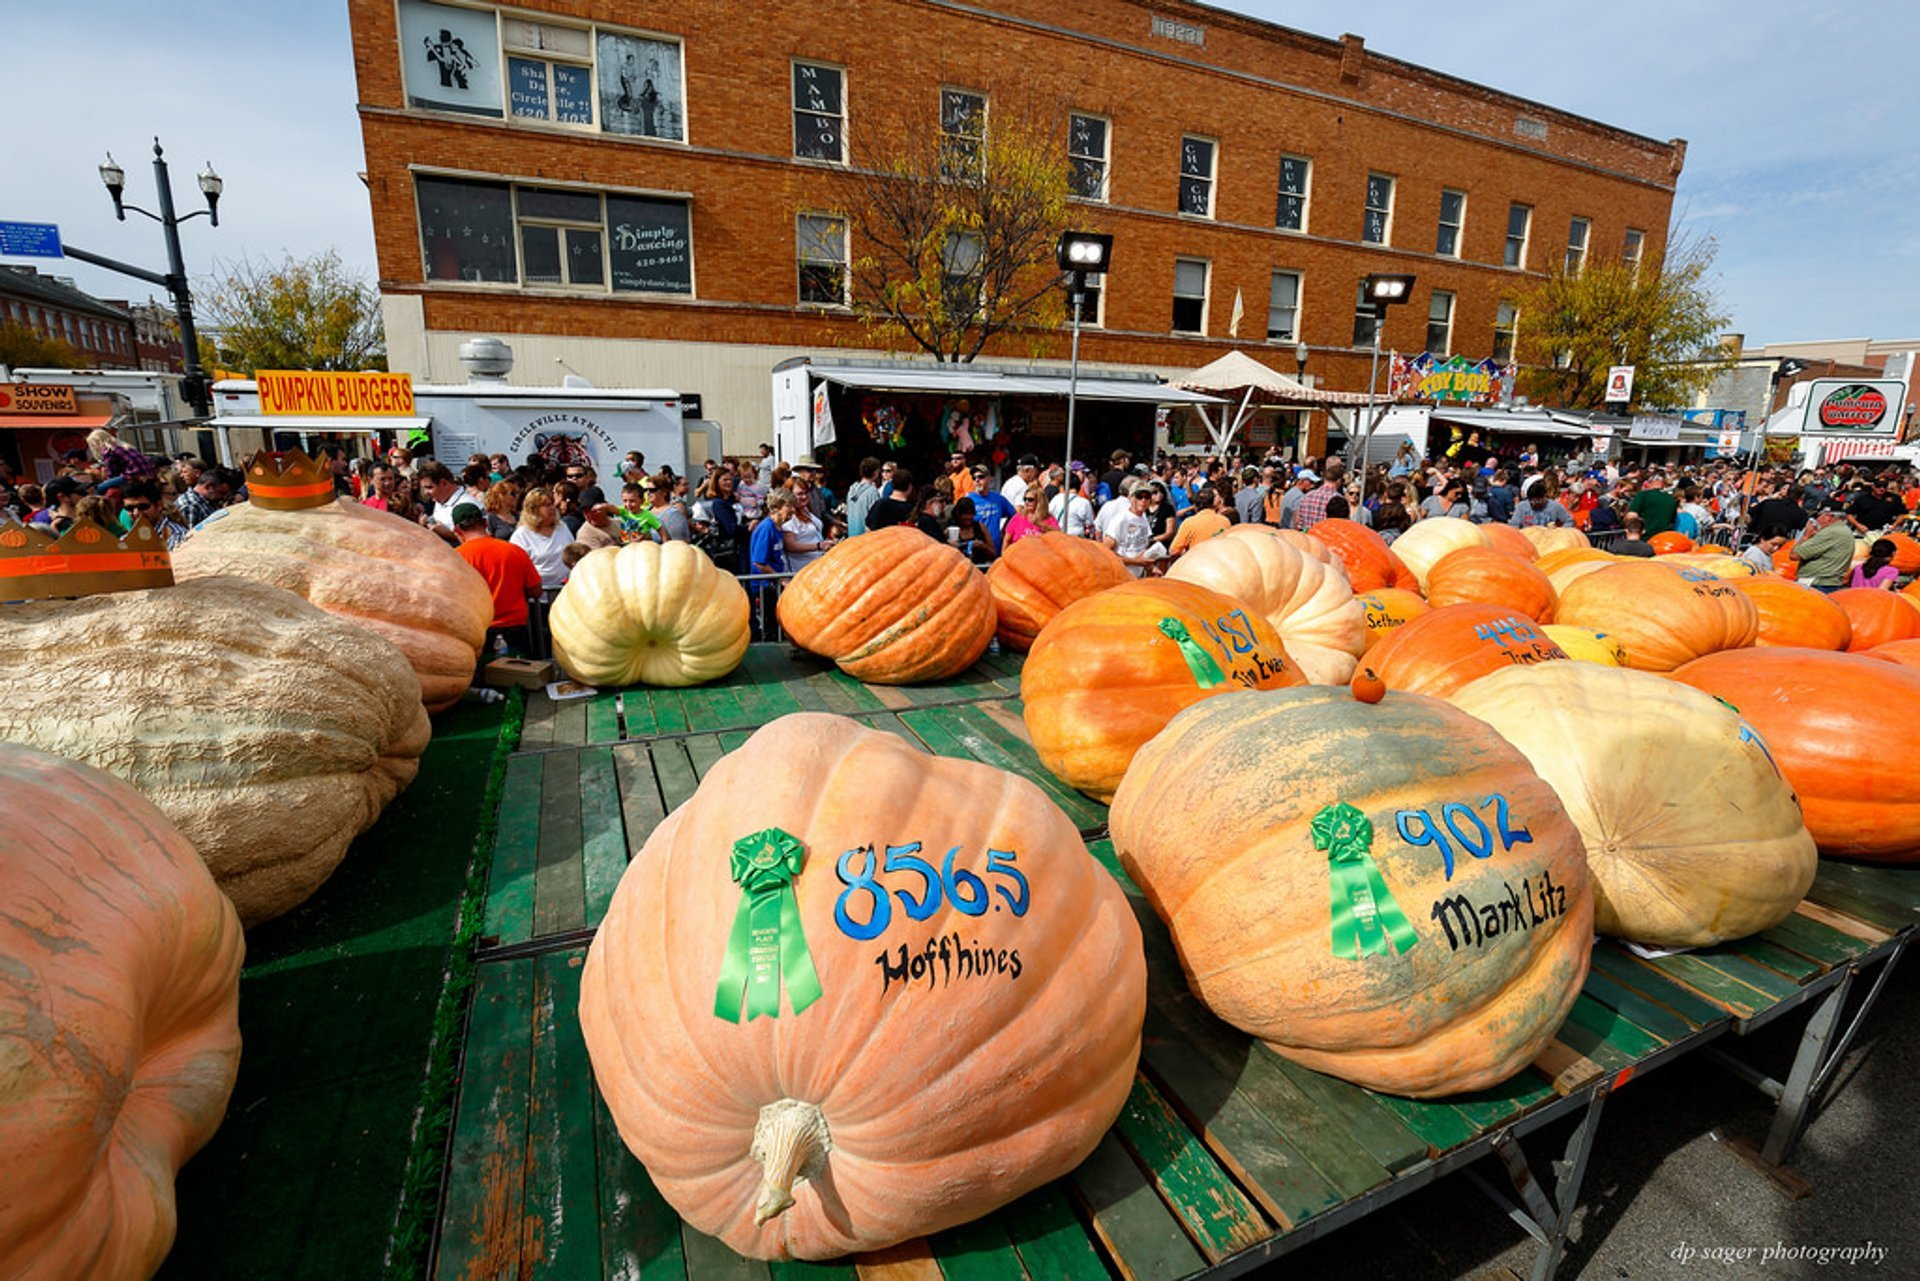 Best time to see Circleville Pumpkin Show in Ohio 2020